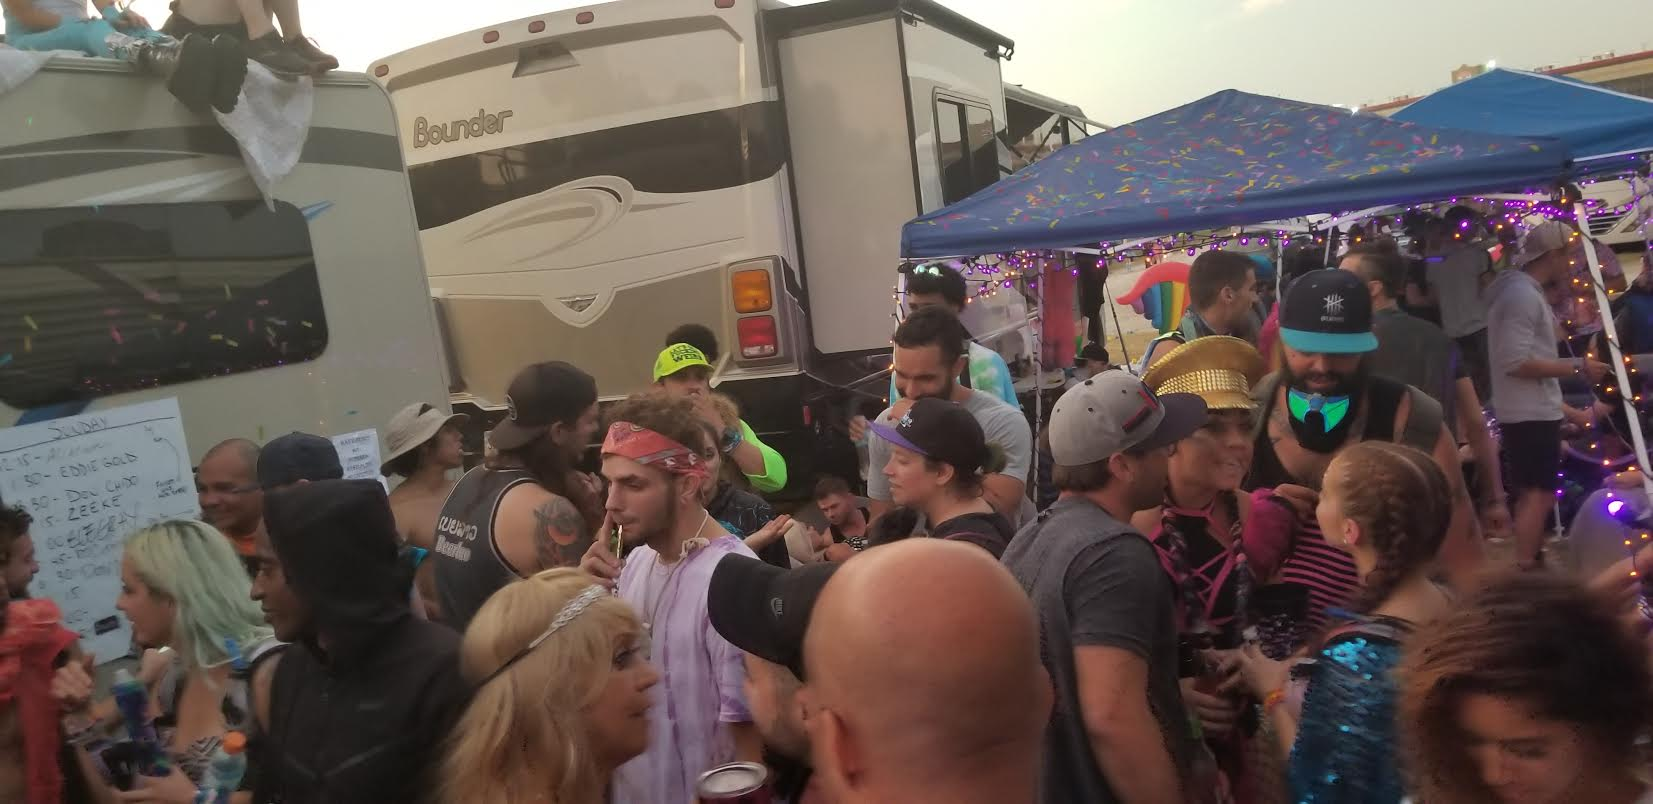 IMF2018: RV Camp After Party